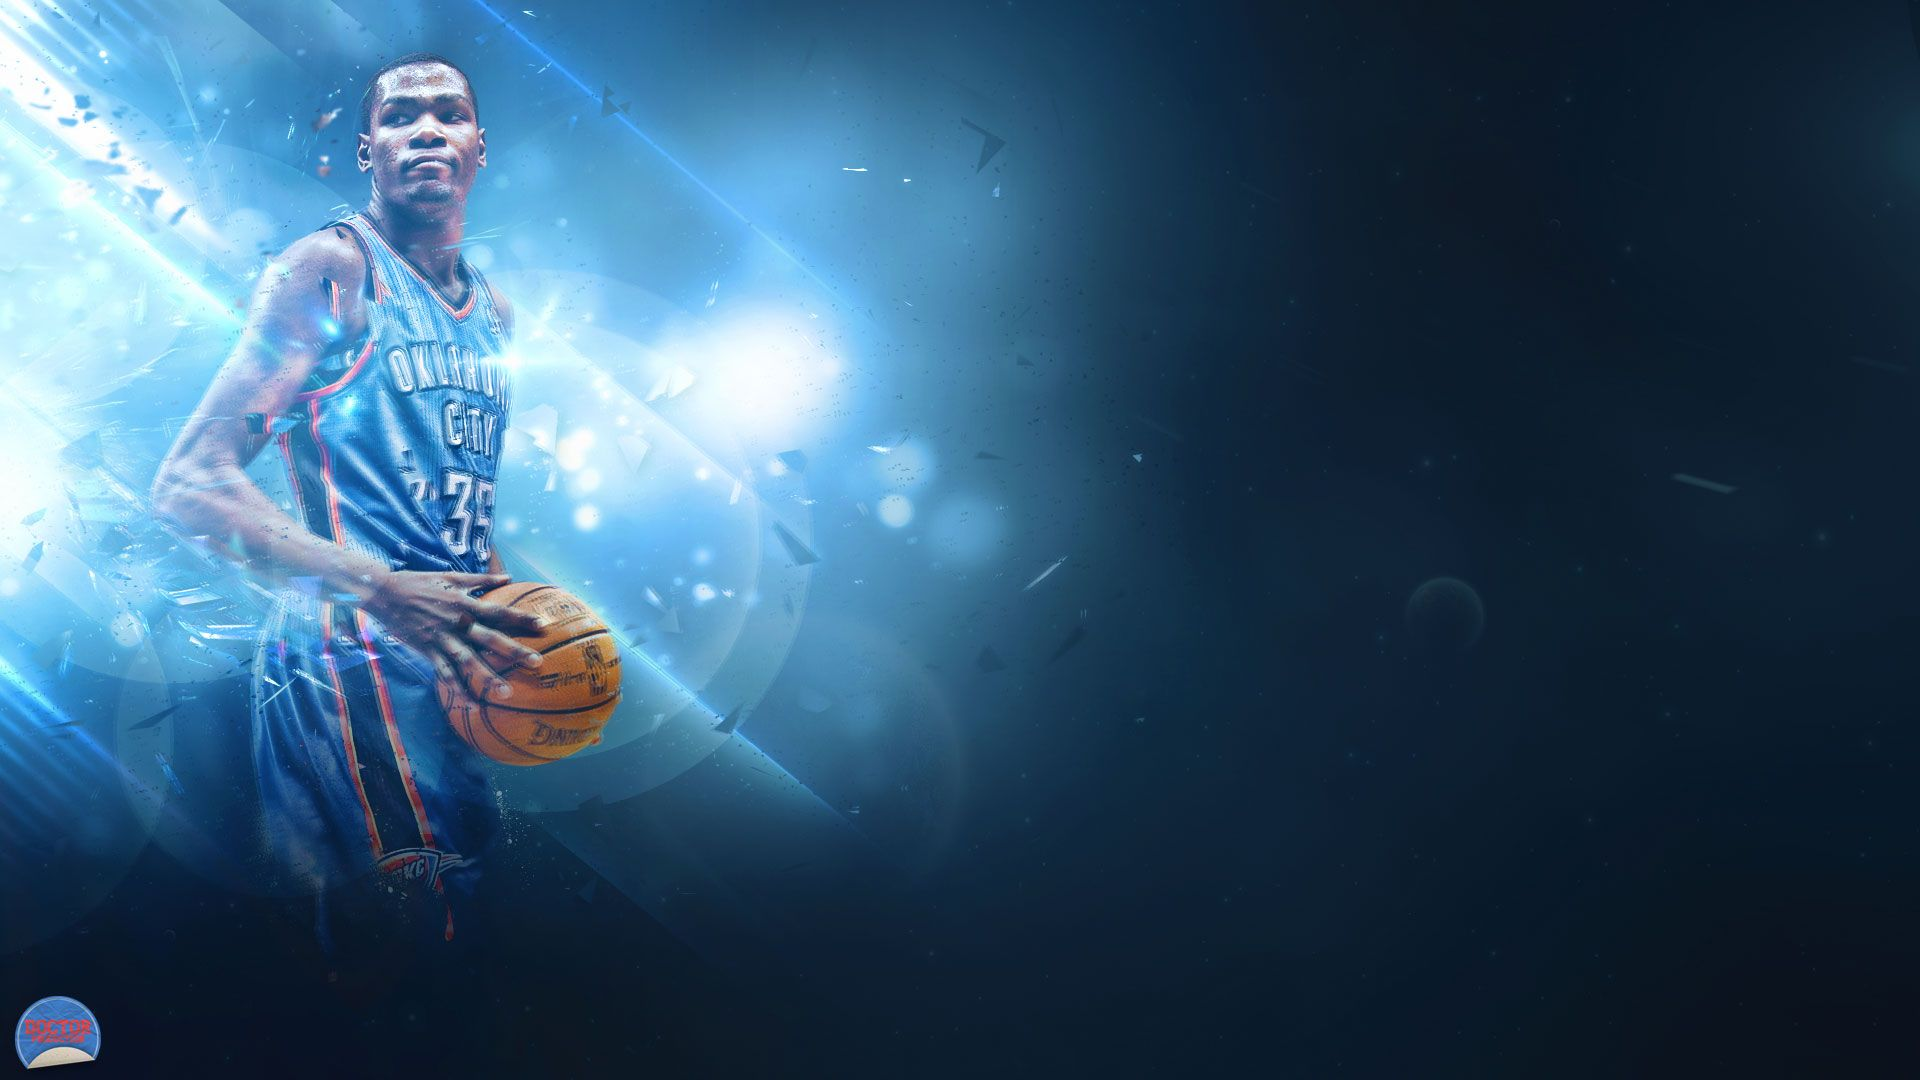 1920x1080 Kevin Durant Full HD Wallpaper and Background Image | 1920x1080 | ID ...